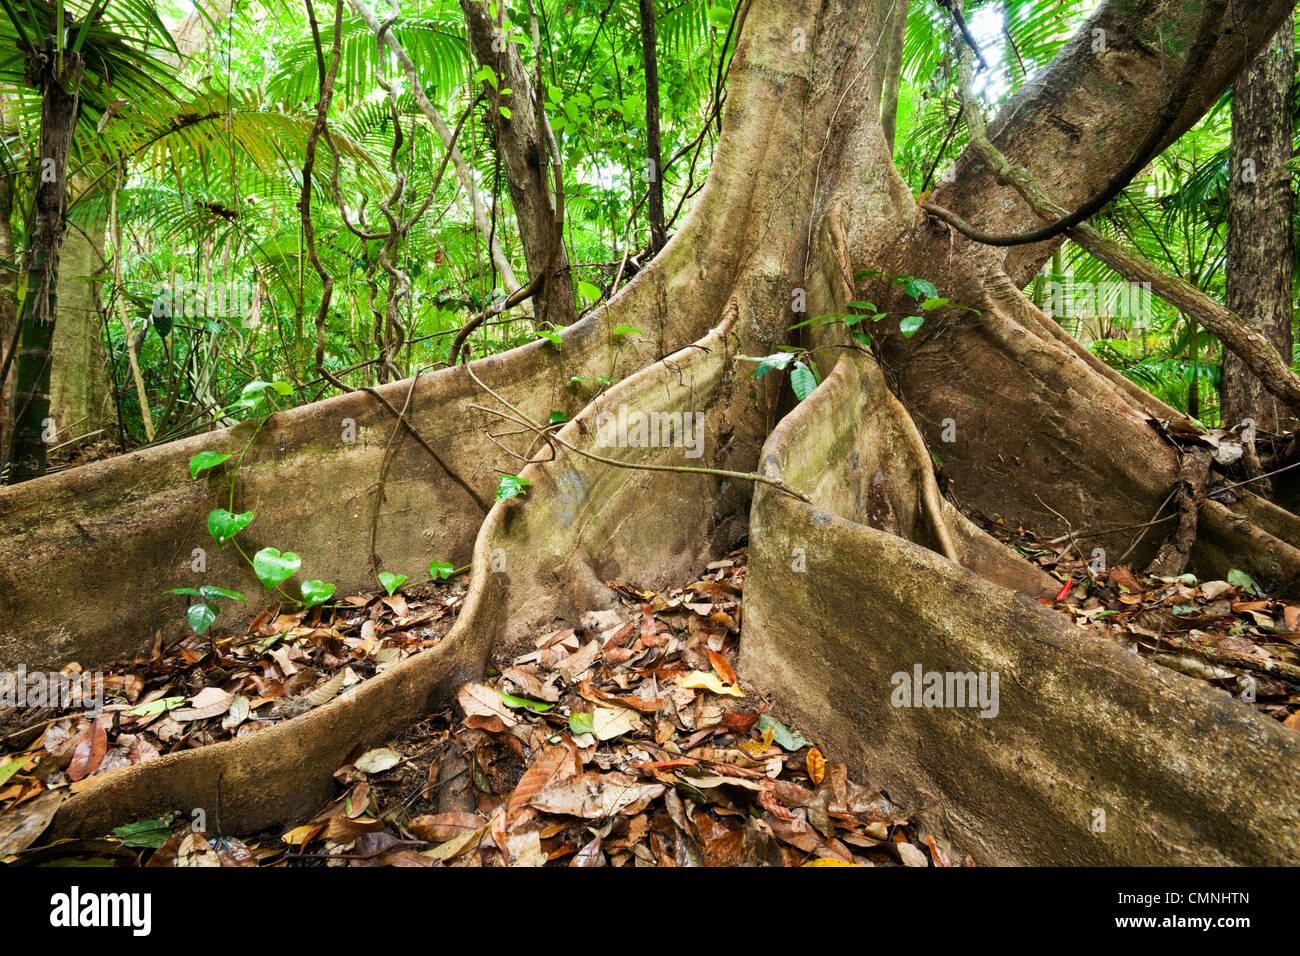 Butress roots of a rainforest tree. Daintree National Park, Queensland, Australia - Stock Image